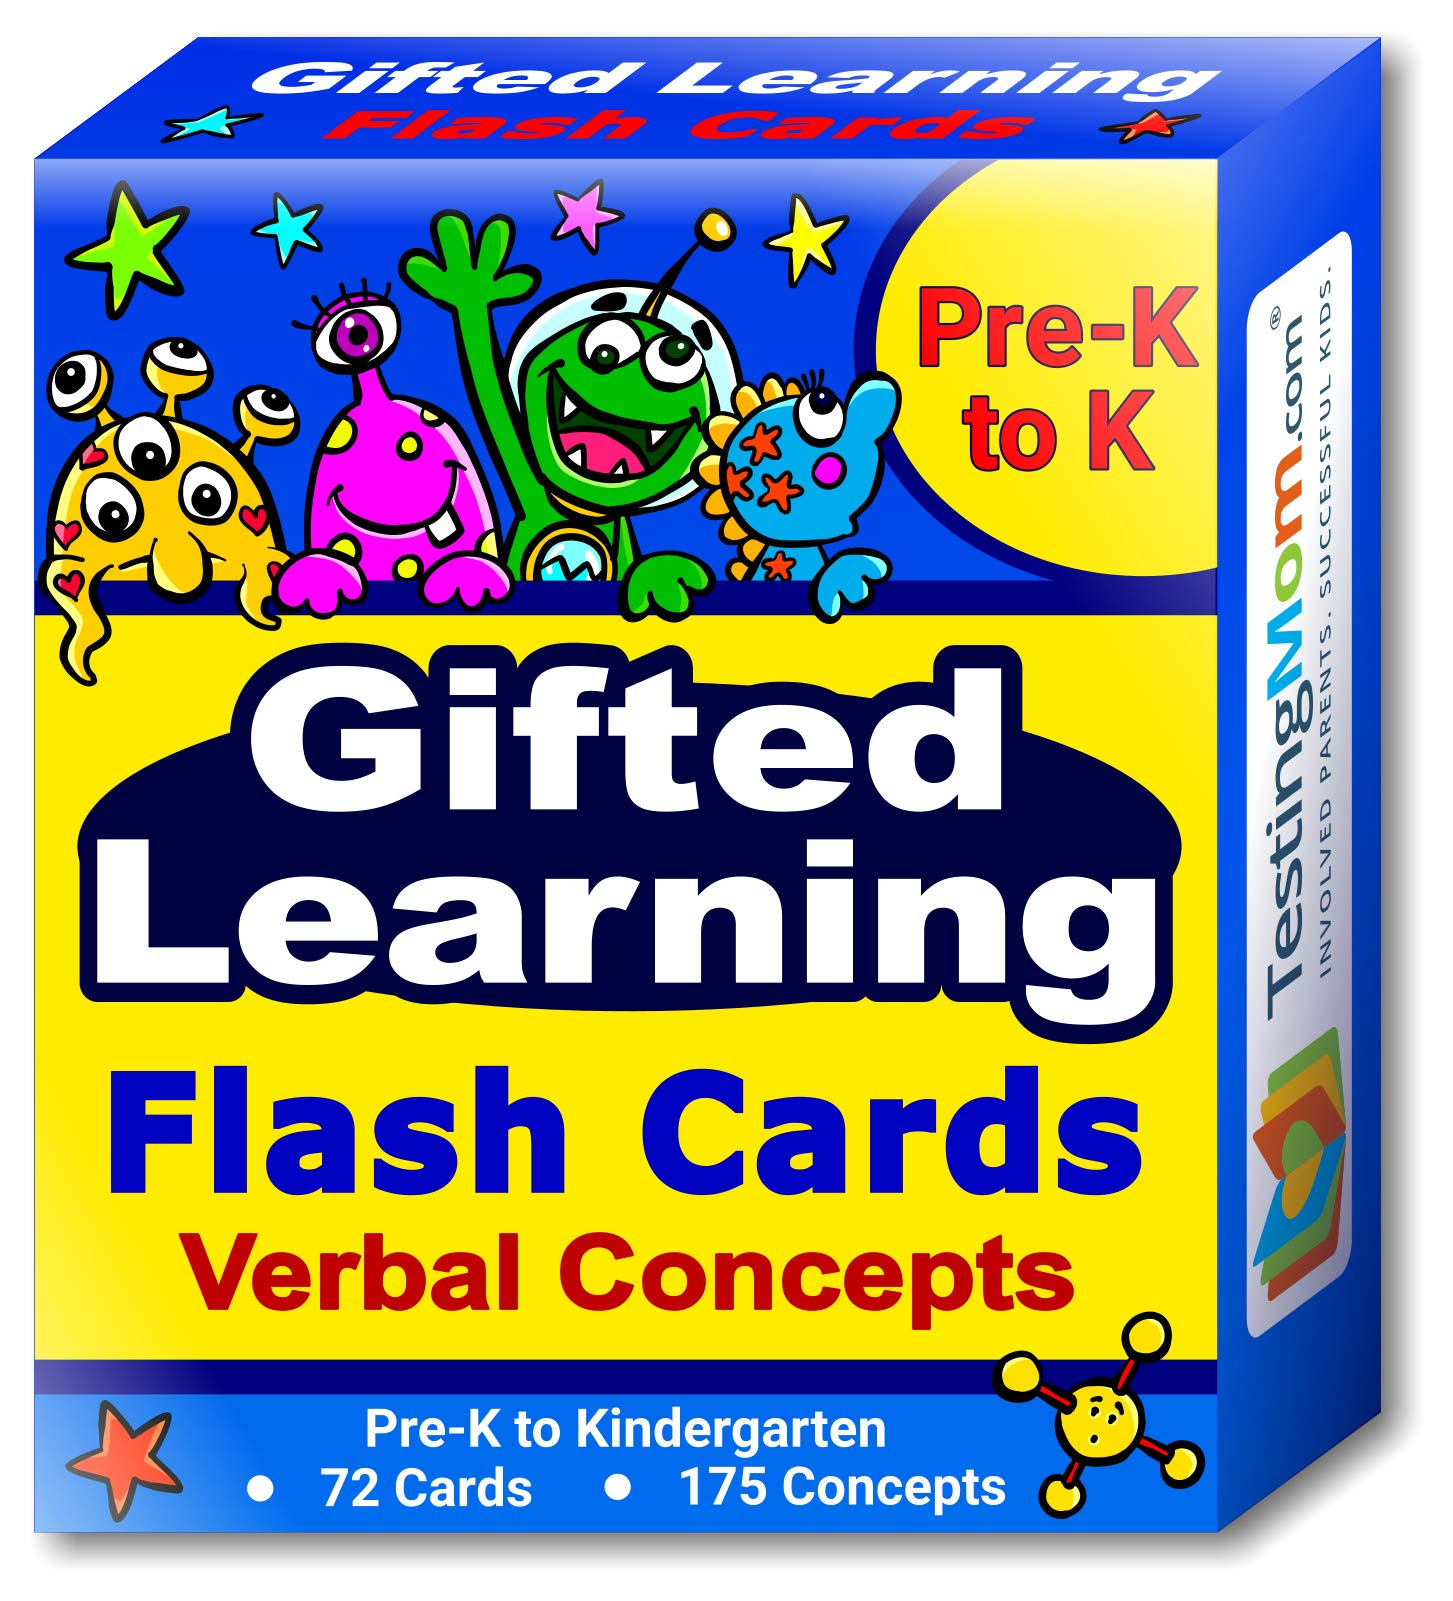 Gifted Learning Flash Cards - Verbal Concepts and Vocabulary for Pre-K - Kindergarten - Learning Toys for CogAT Test, OLSAT, Iowa Test, NYC Gifted and Talented, ERB, WISC, WPPSI by TestingMom.com